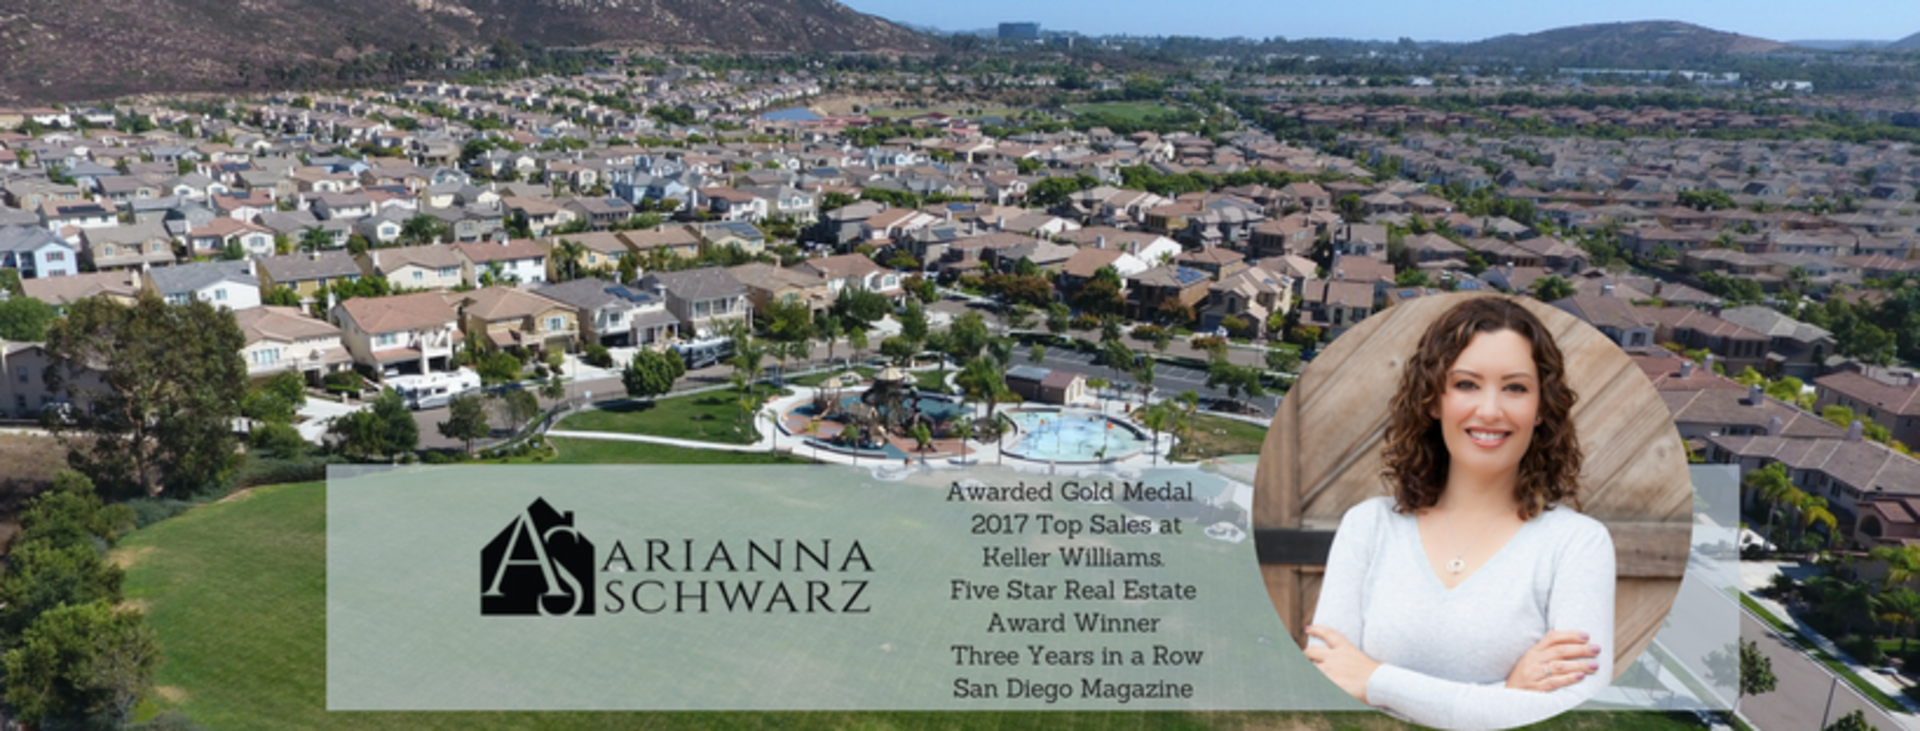 Coming Soon in 4S Ranch San Diego!